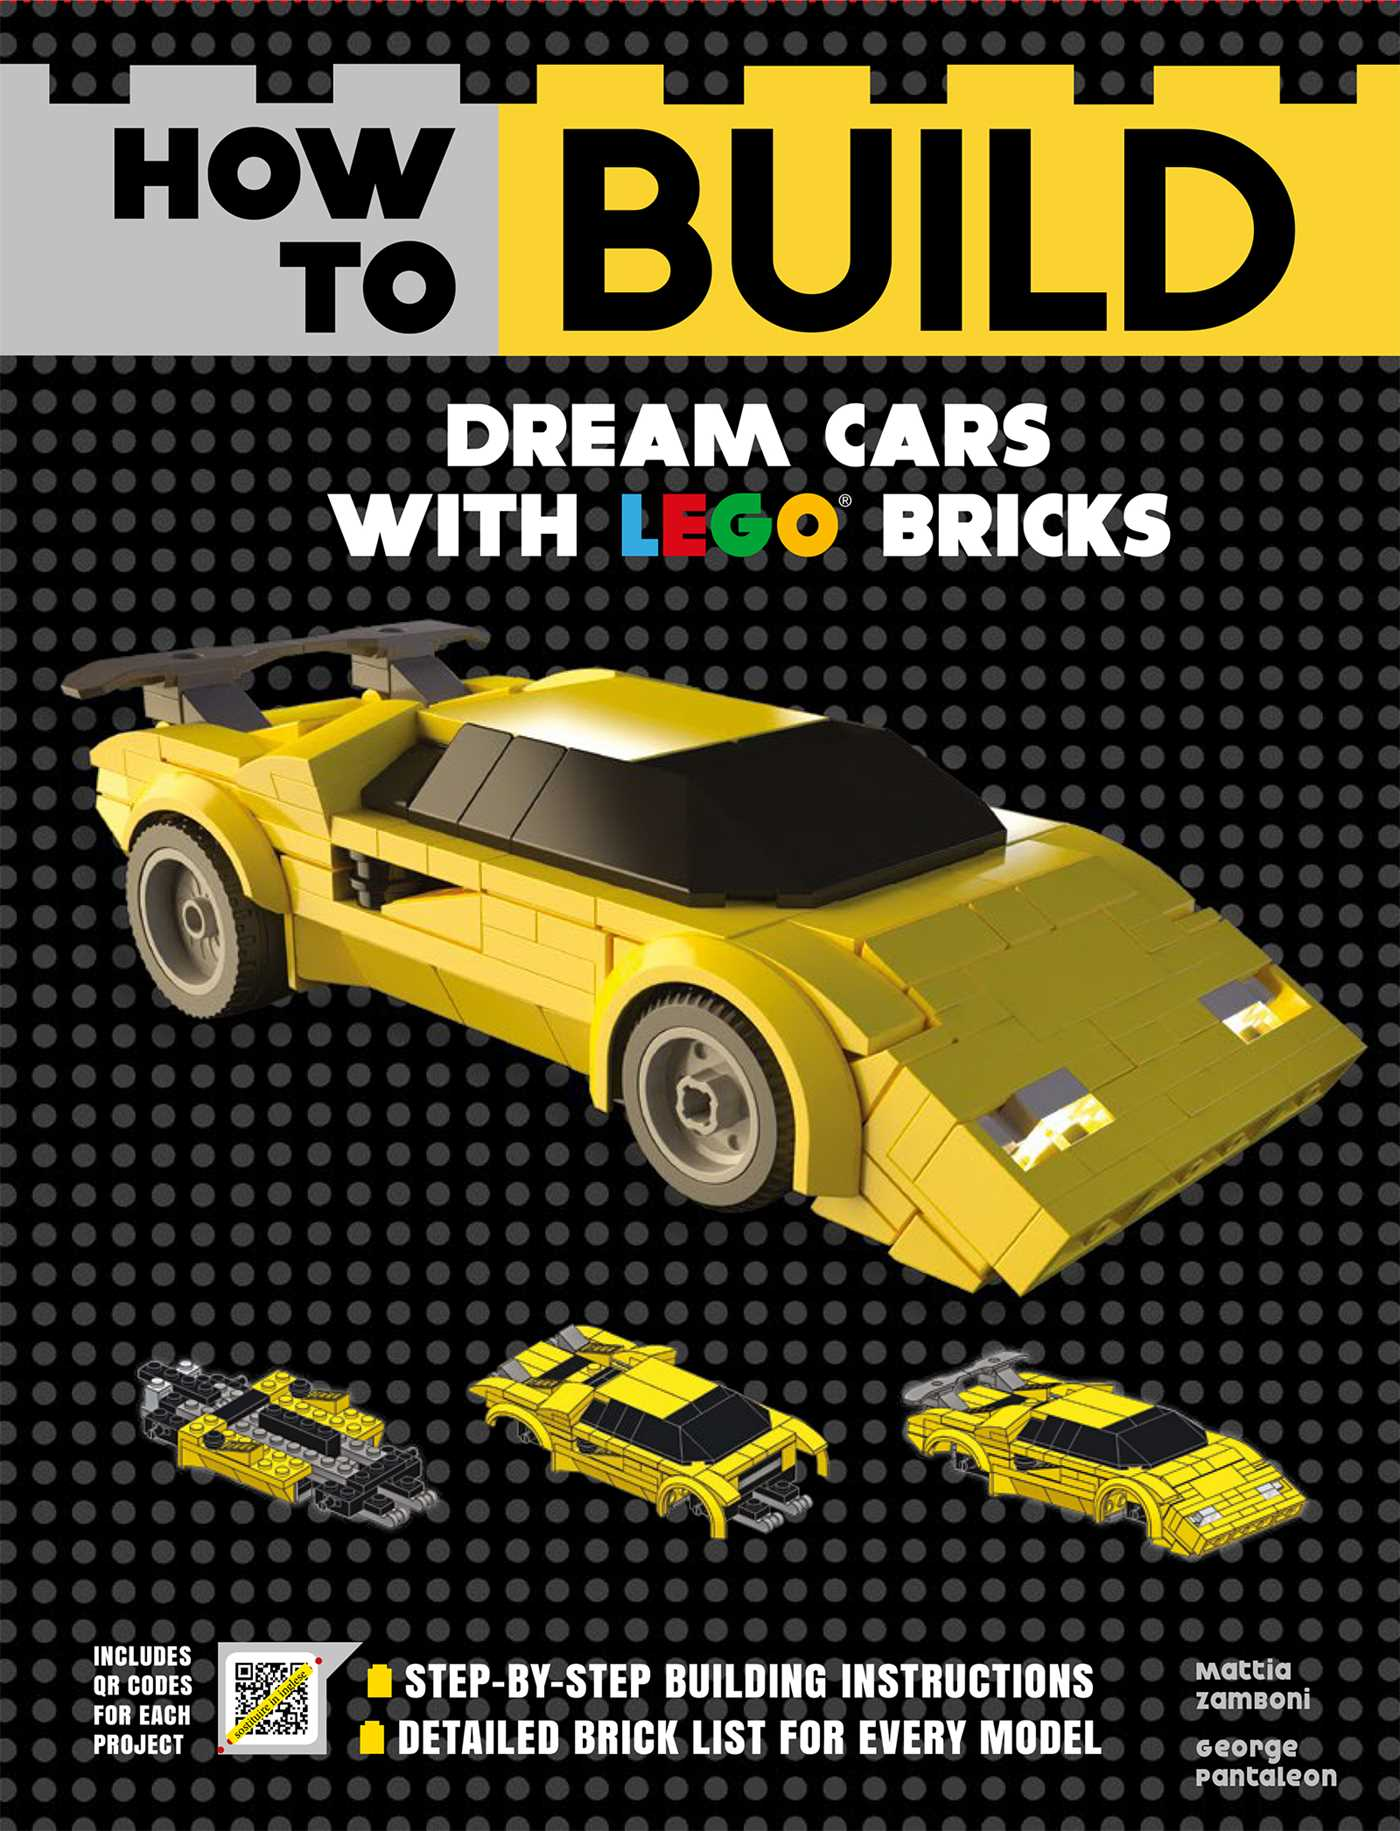 How to build dream cars with lego bricks 9781684125395 hr